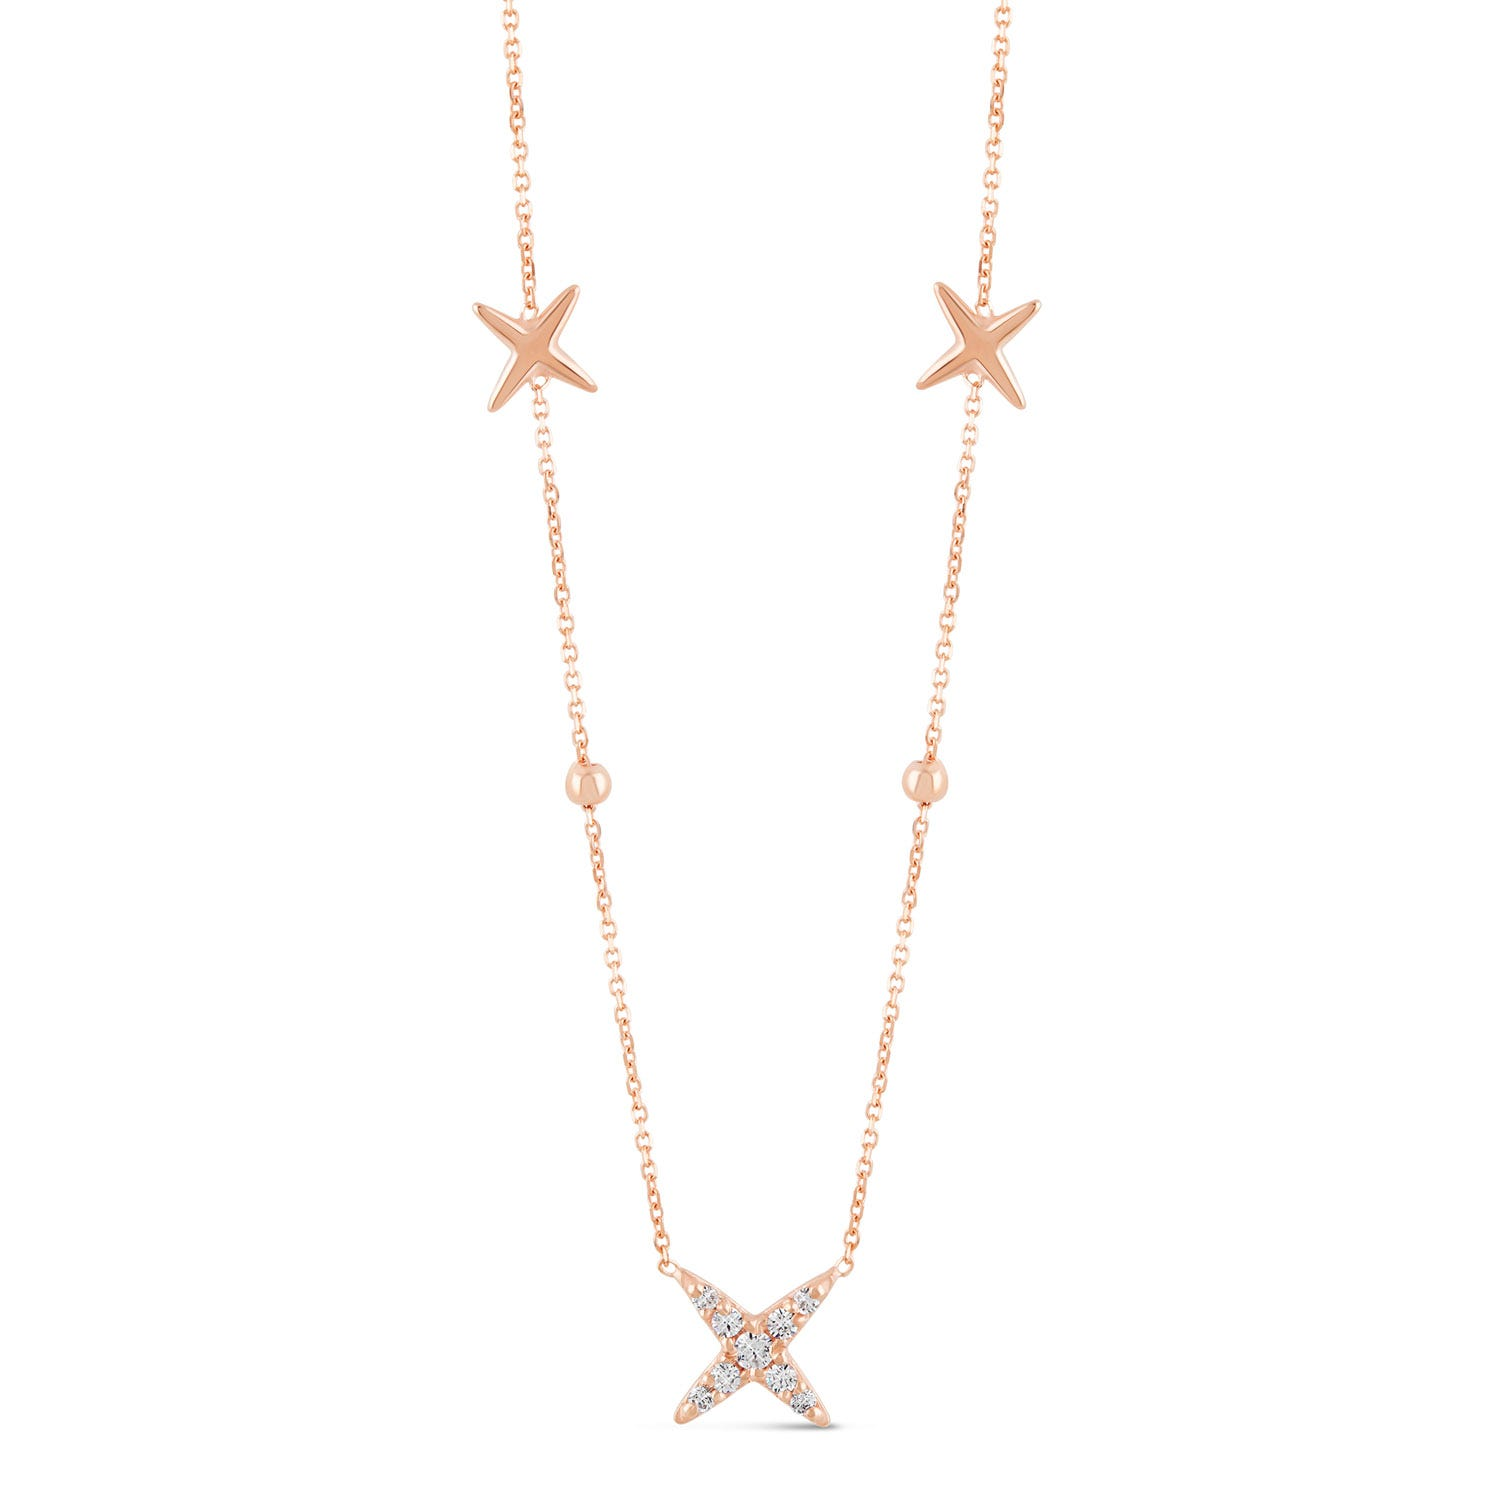 9ct Rose Gold Plain and Cubic Zirconia Cross Chain Necklet